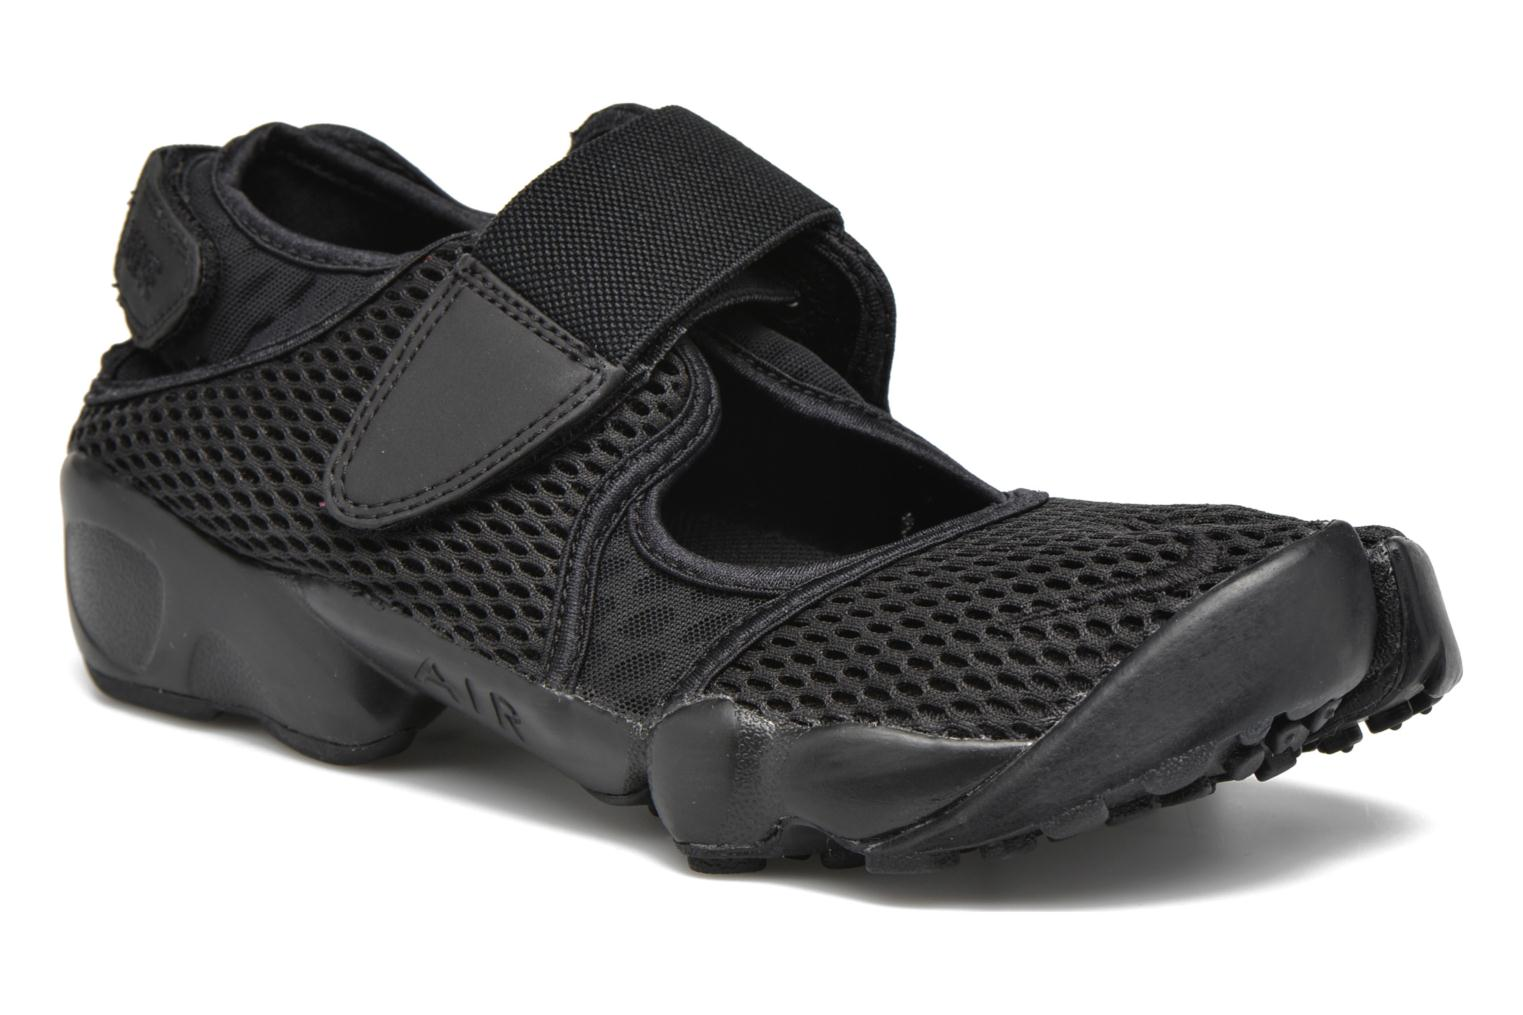 buy cheap nike air rift compare women 39 s footwear prices. Black Bedroom Furniture Sets. Home Design Ideas